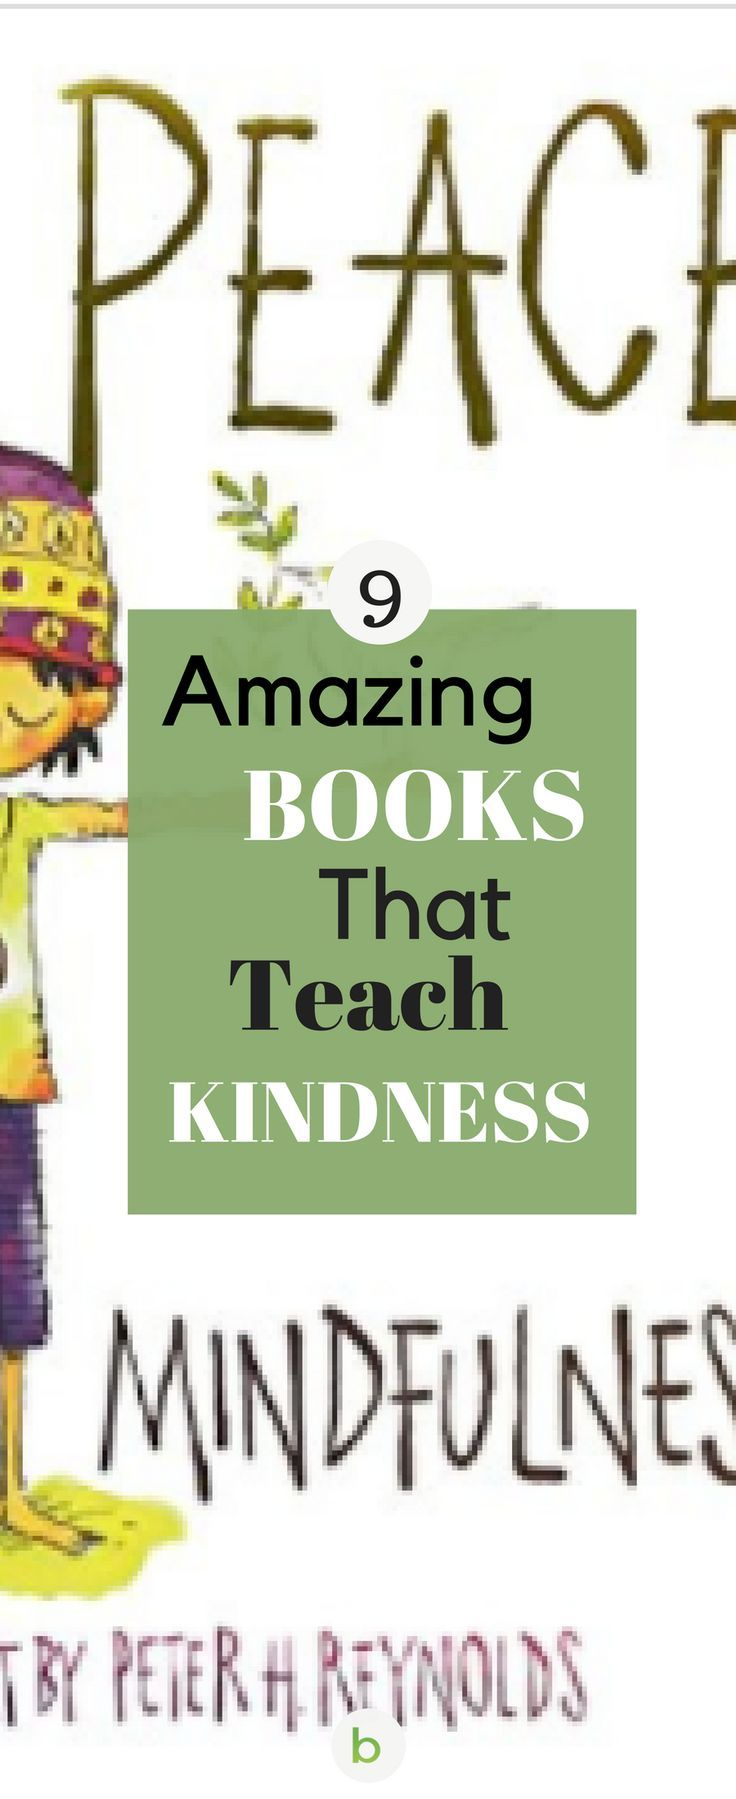 Amazing Books That Teach Kindness. Research shows that reading kindness stories helps kids understand and empathize with different perspectives. This, in turn, leads to them treating others with more kindness. Read our list of NEW and old favorites.#beenke#books#kindness